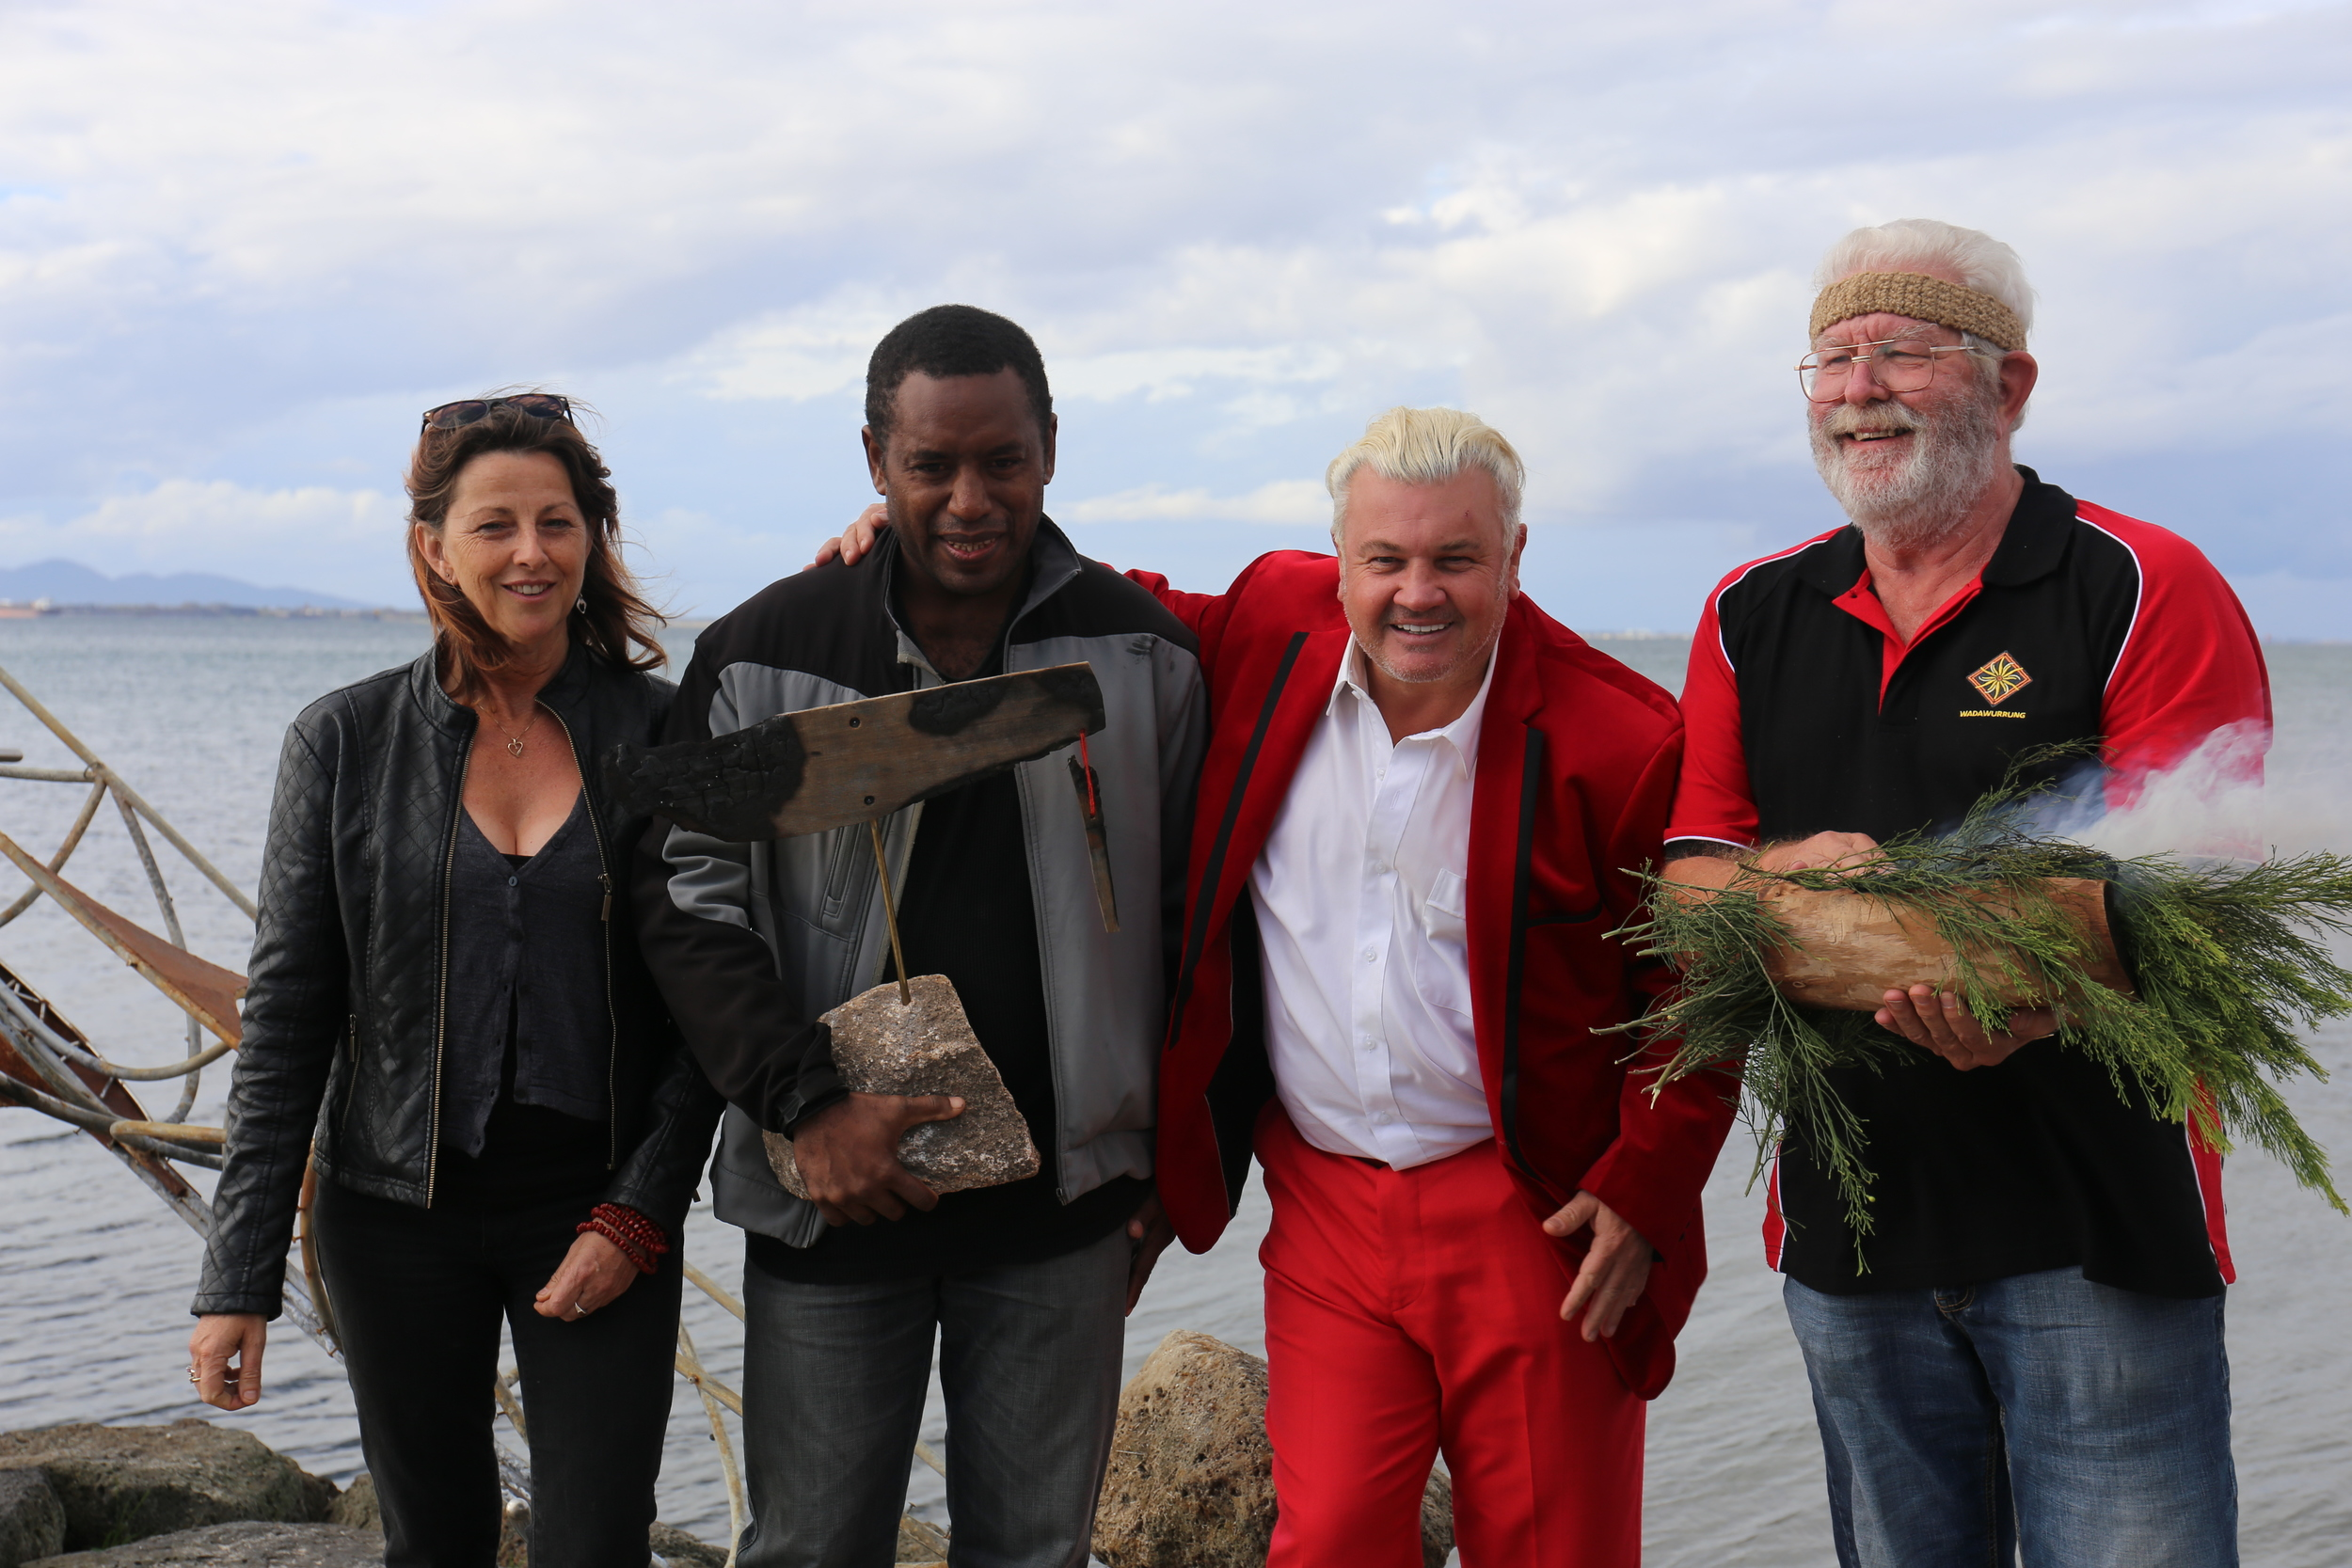 Canoe artists Mahony Maia Kiely and Leonard Tebegetu with Geelong Mayor Darryn Lyons and Wadawurrung Elder Uncle Bryon Powell at the Eastern Beach ceremony.